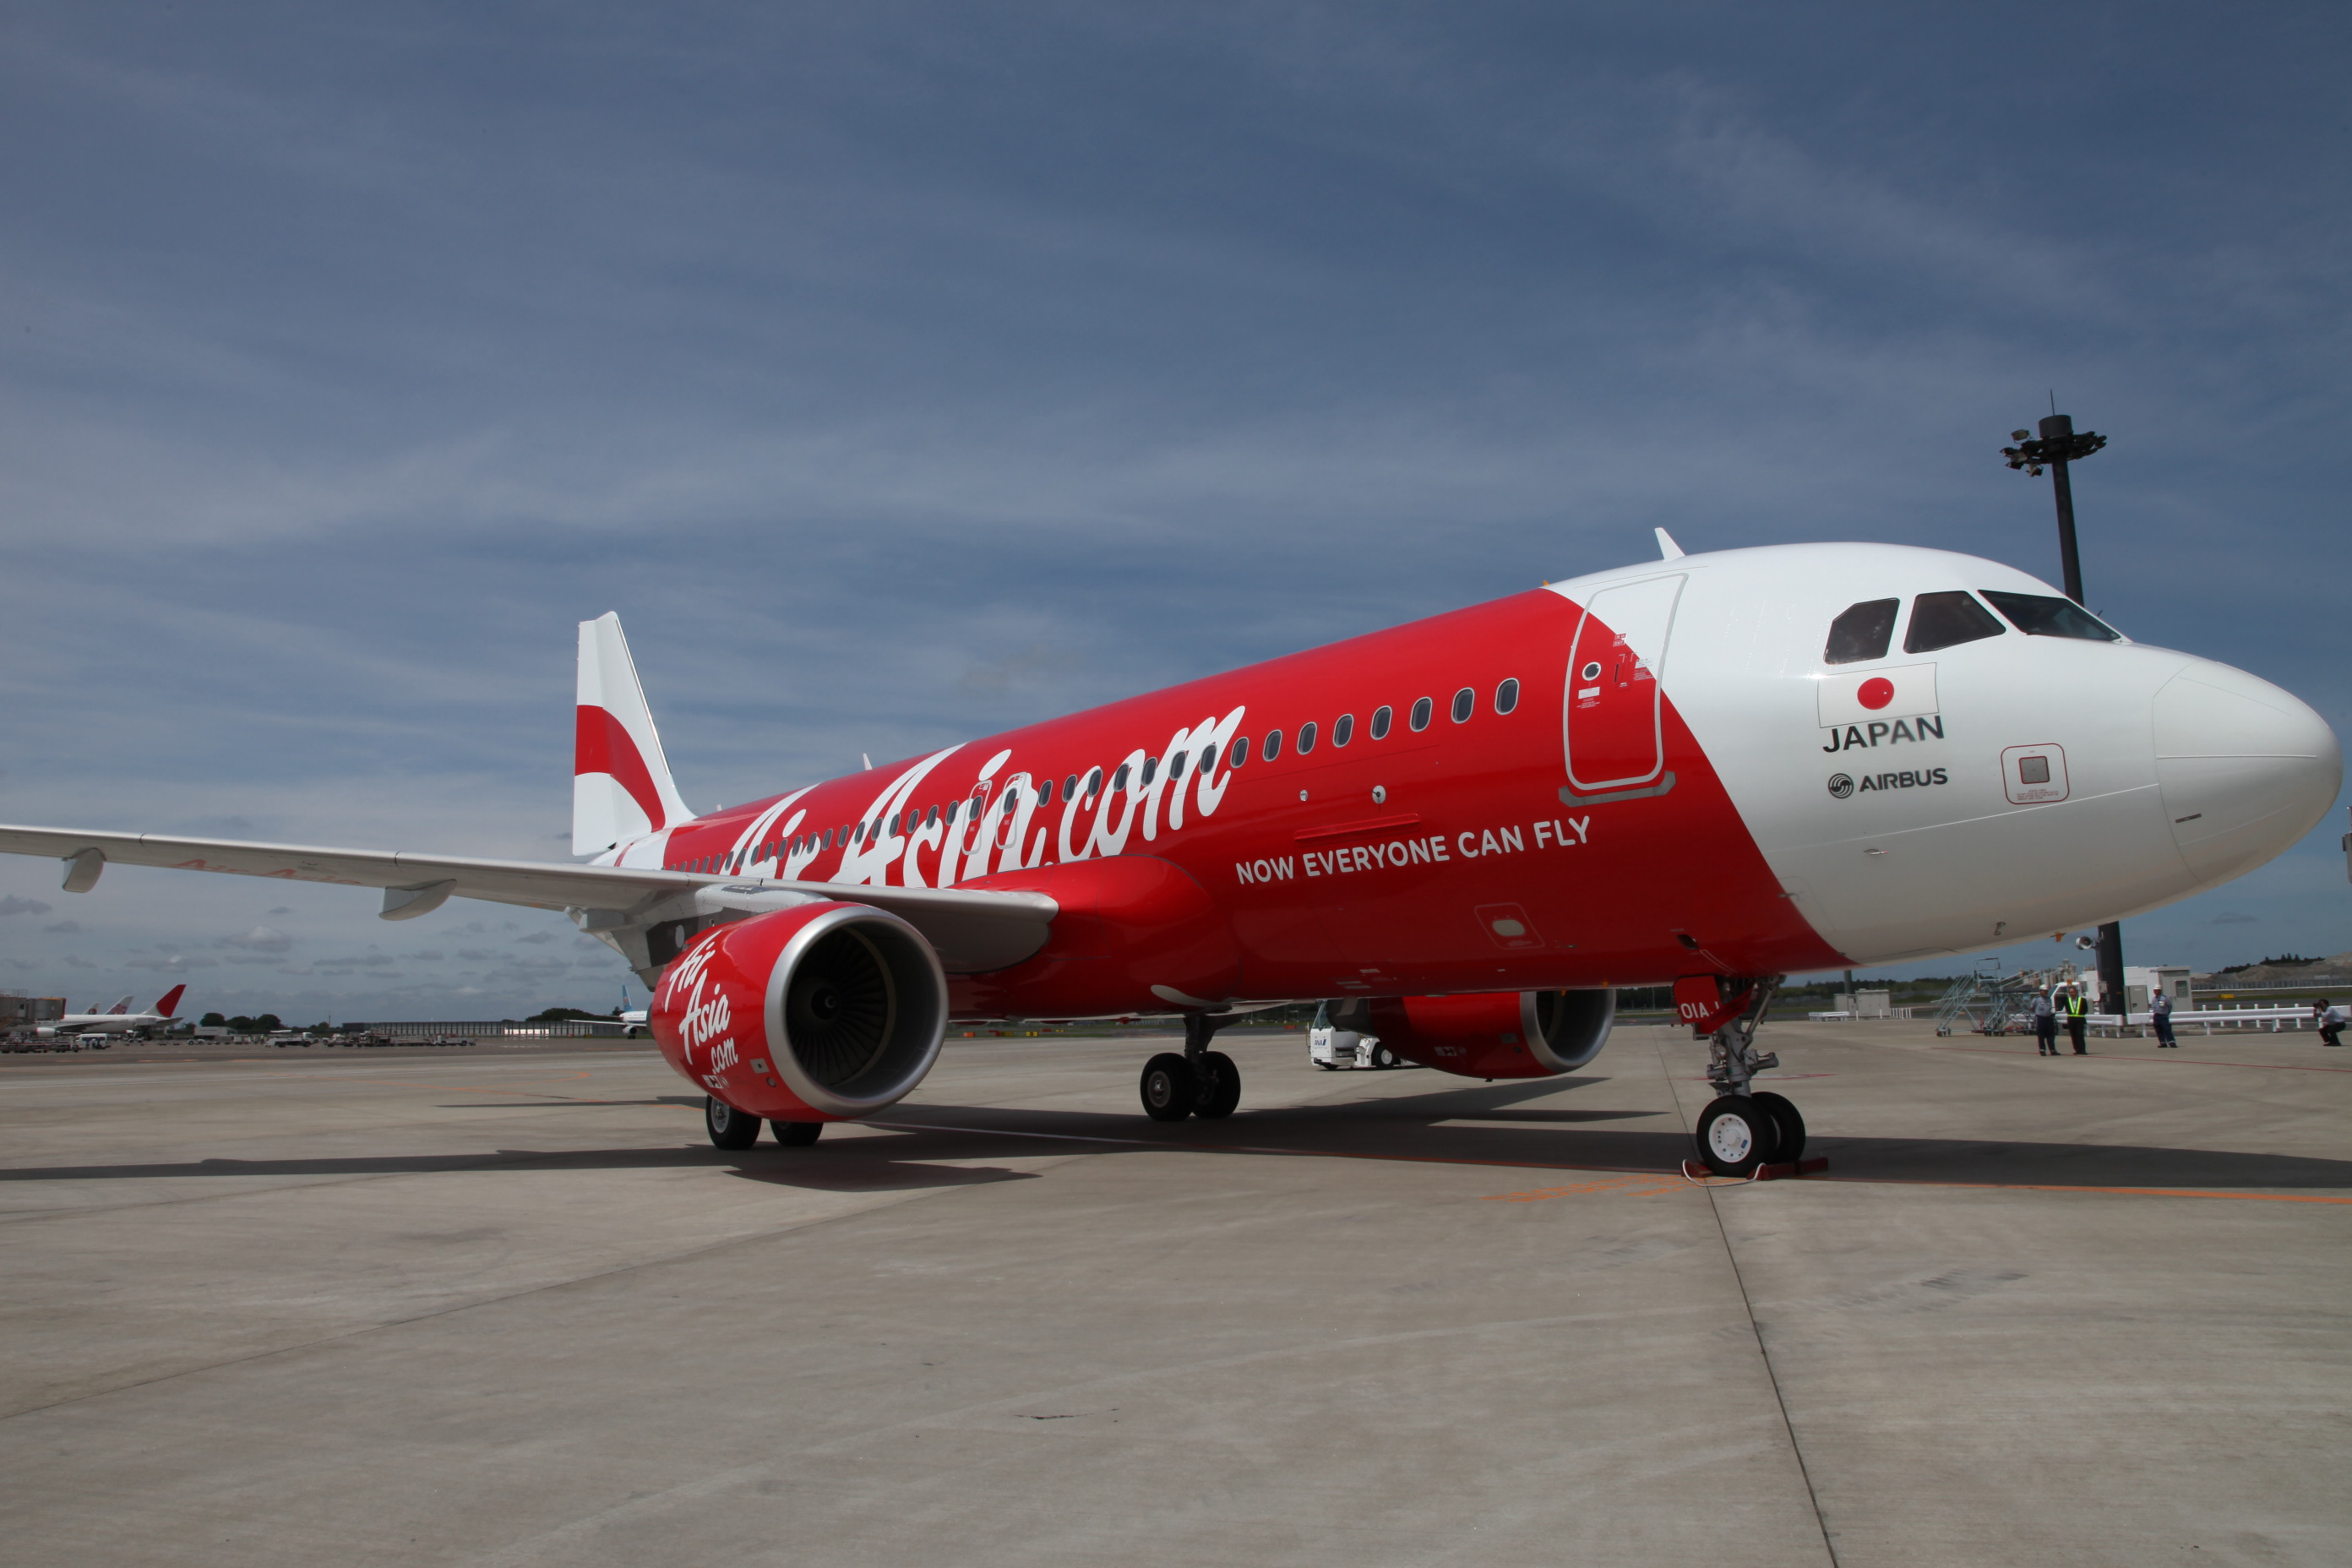 Air Asia Japan steps out from Japan, hit by COVID-19, stopping all of its services on December 5 2020